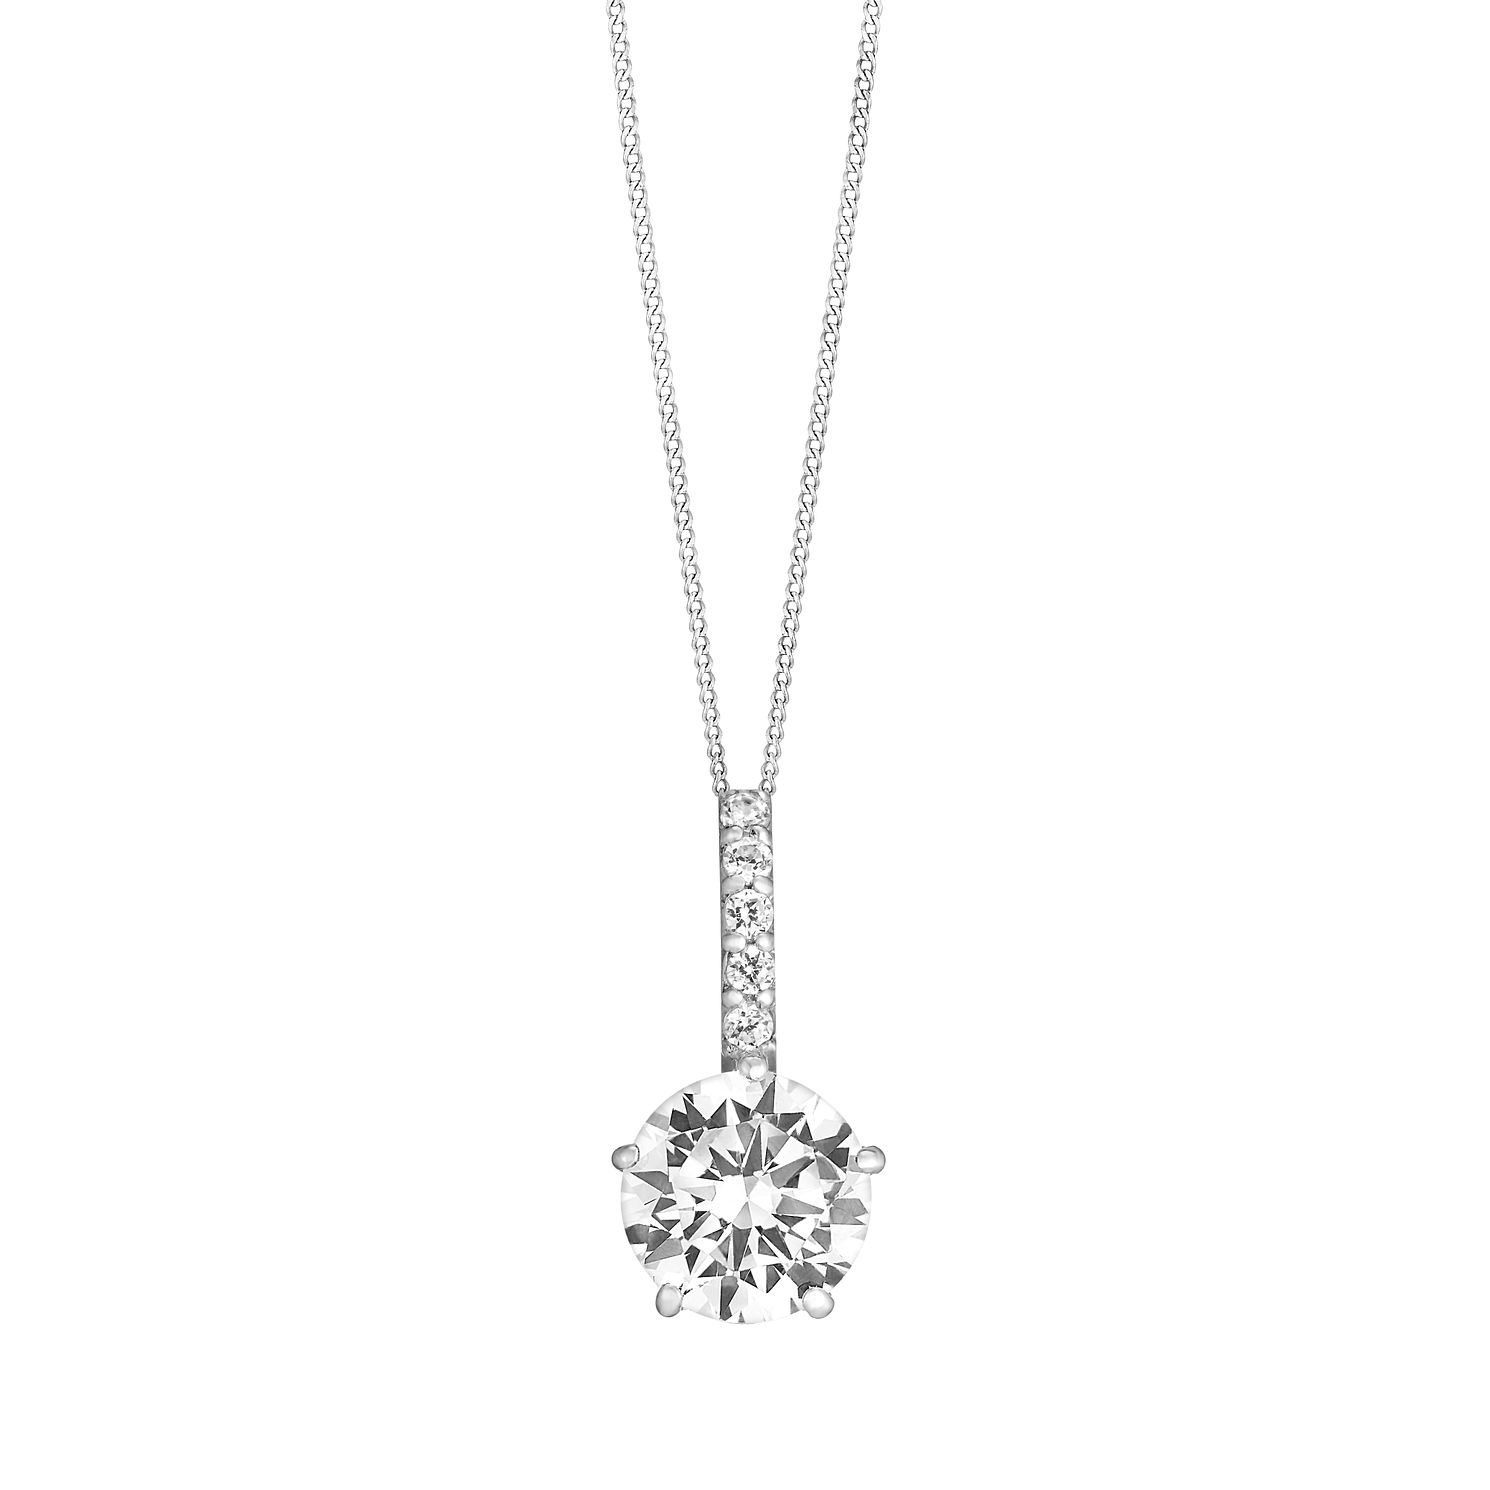 9ct White Gold Cubic Zirconia Bail Solitaire Pendant - Product number 3063631